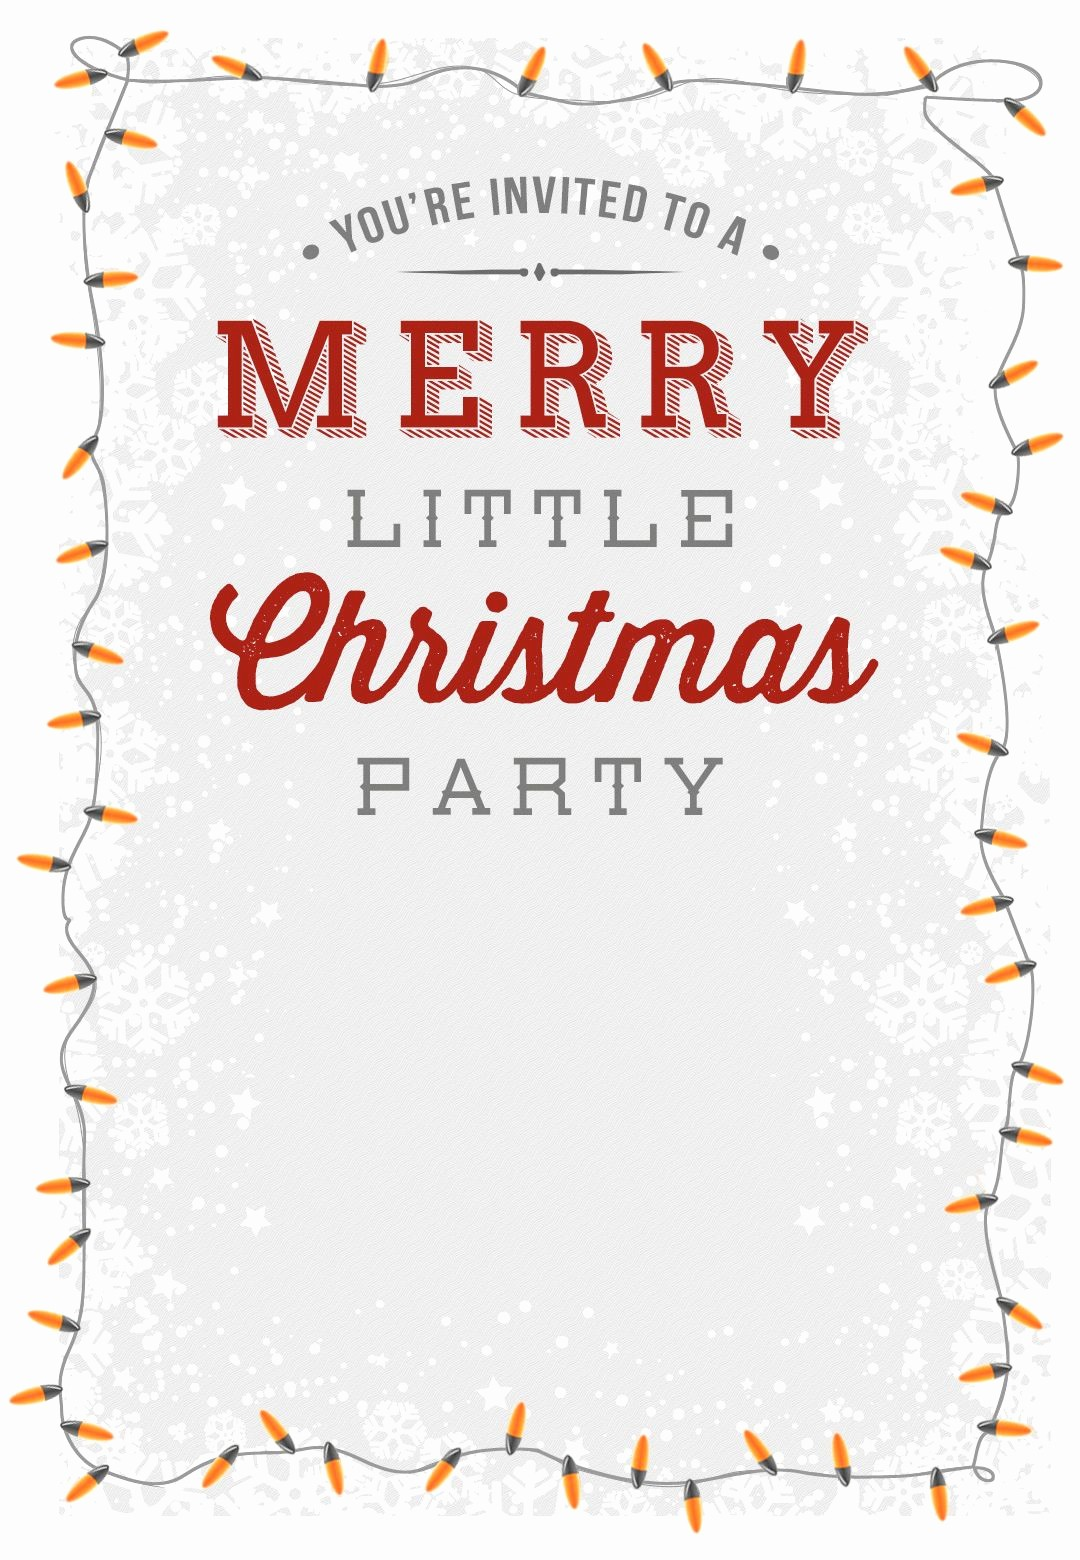 Christmas Party Invitations Free Template Fresh A Merry Little Party Free Printable Christmas Invitation